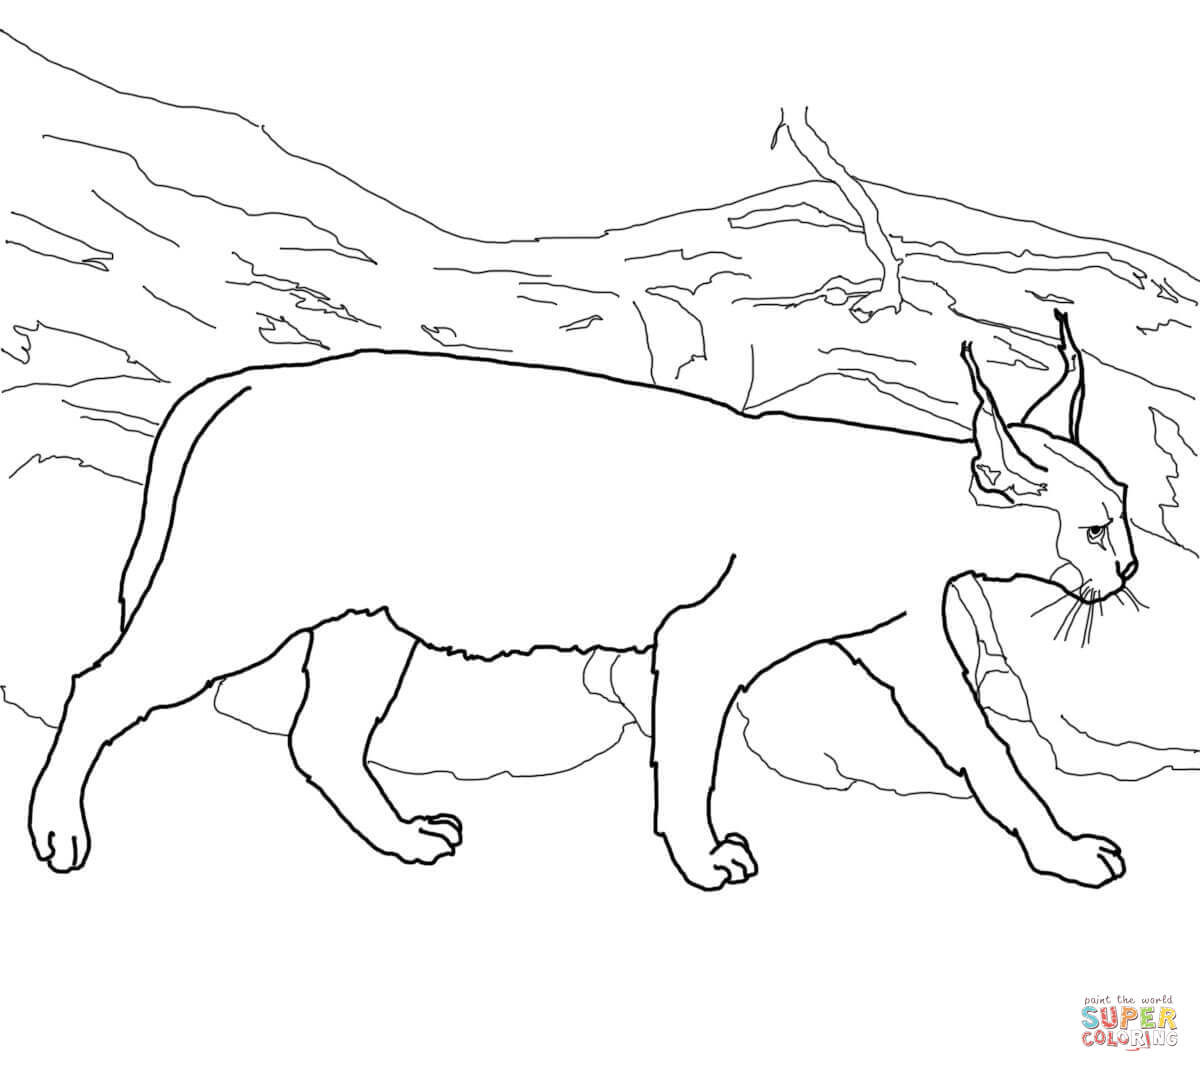 Caracals coloring pages | Free Coloring Pages